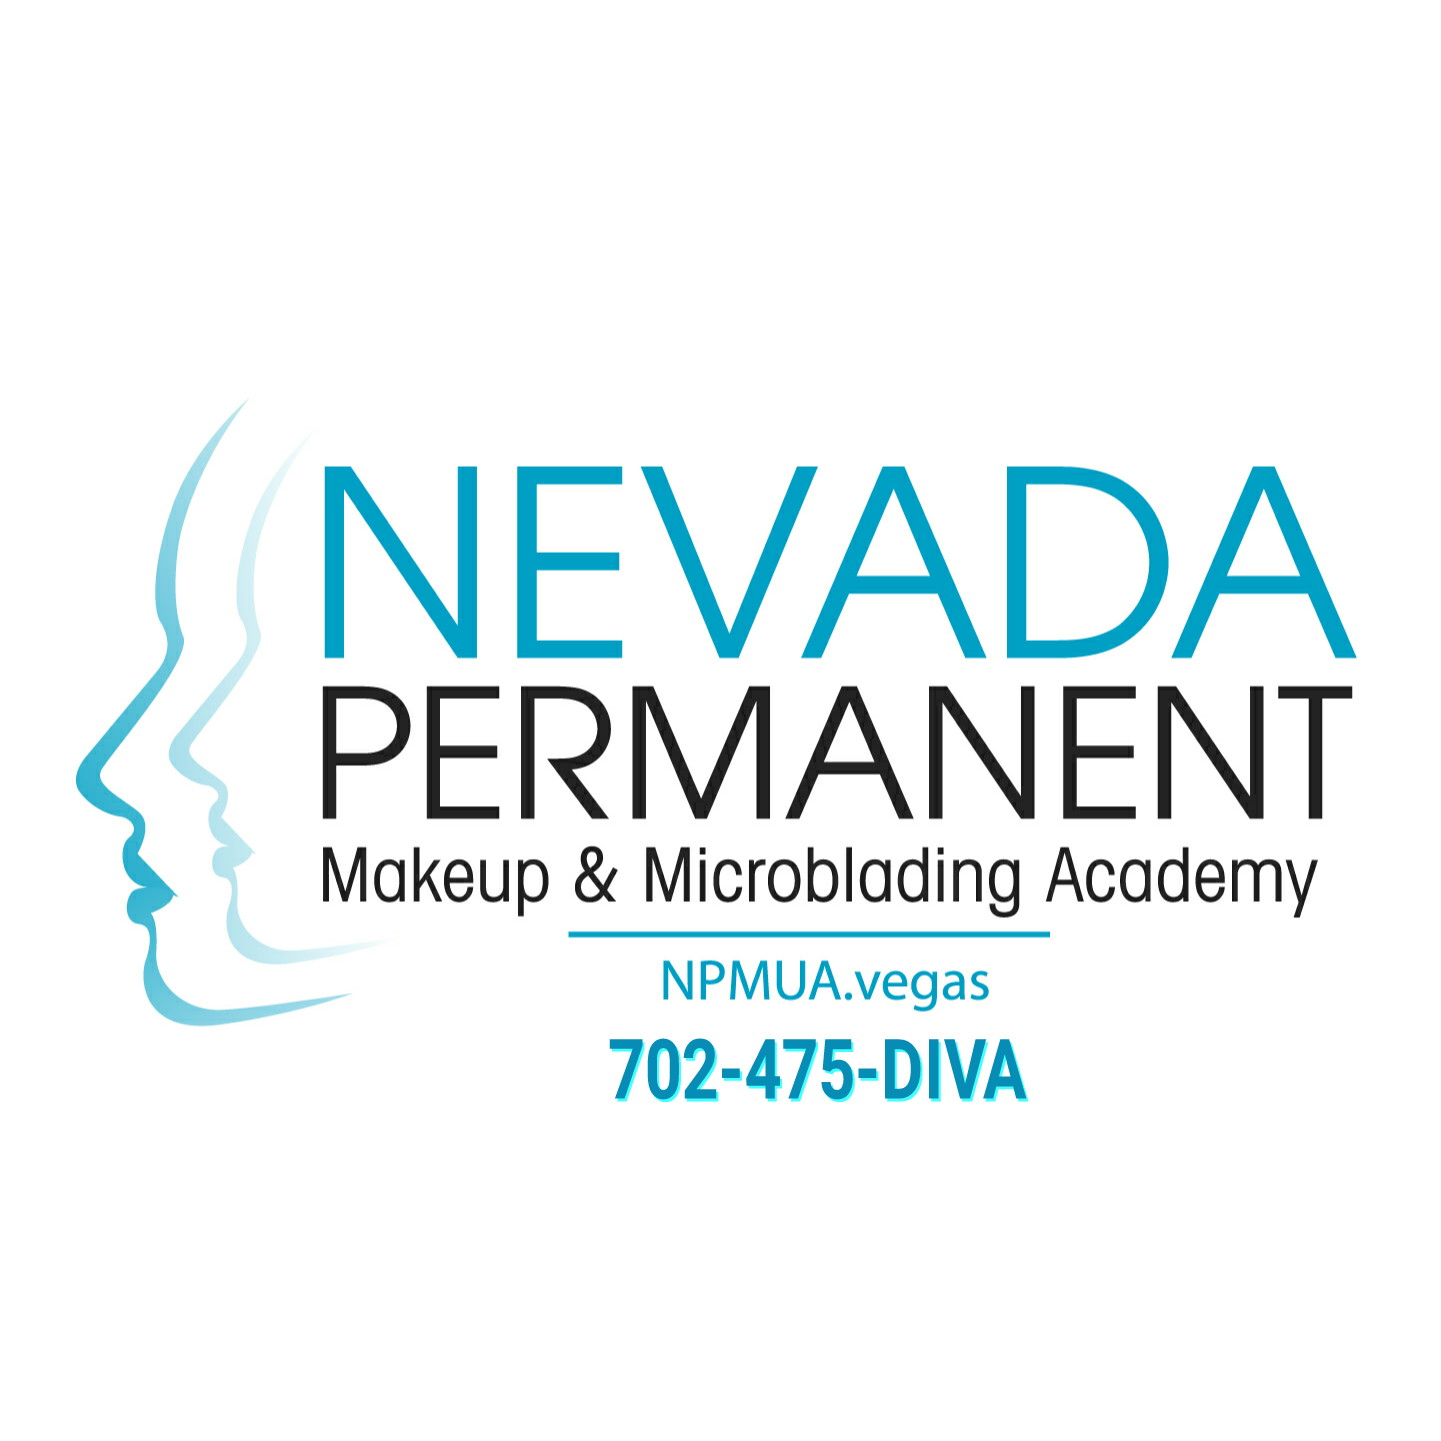 NevadaPerm-makeuplogo